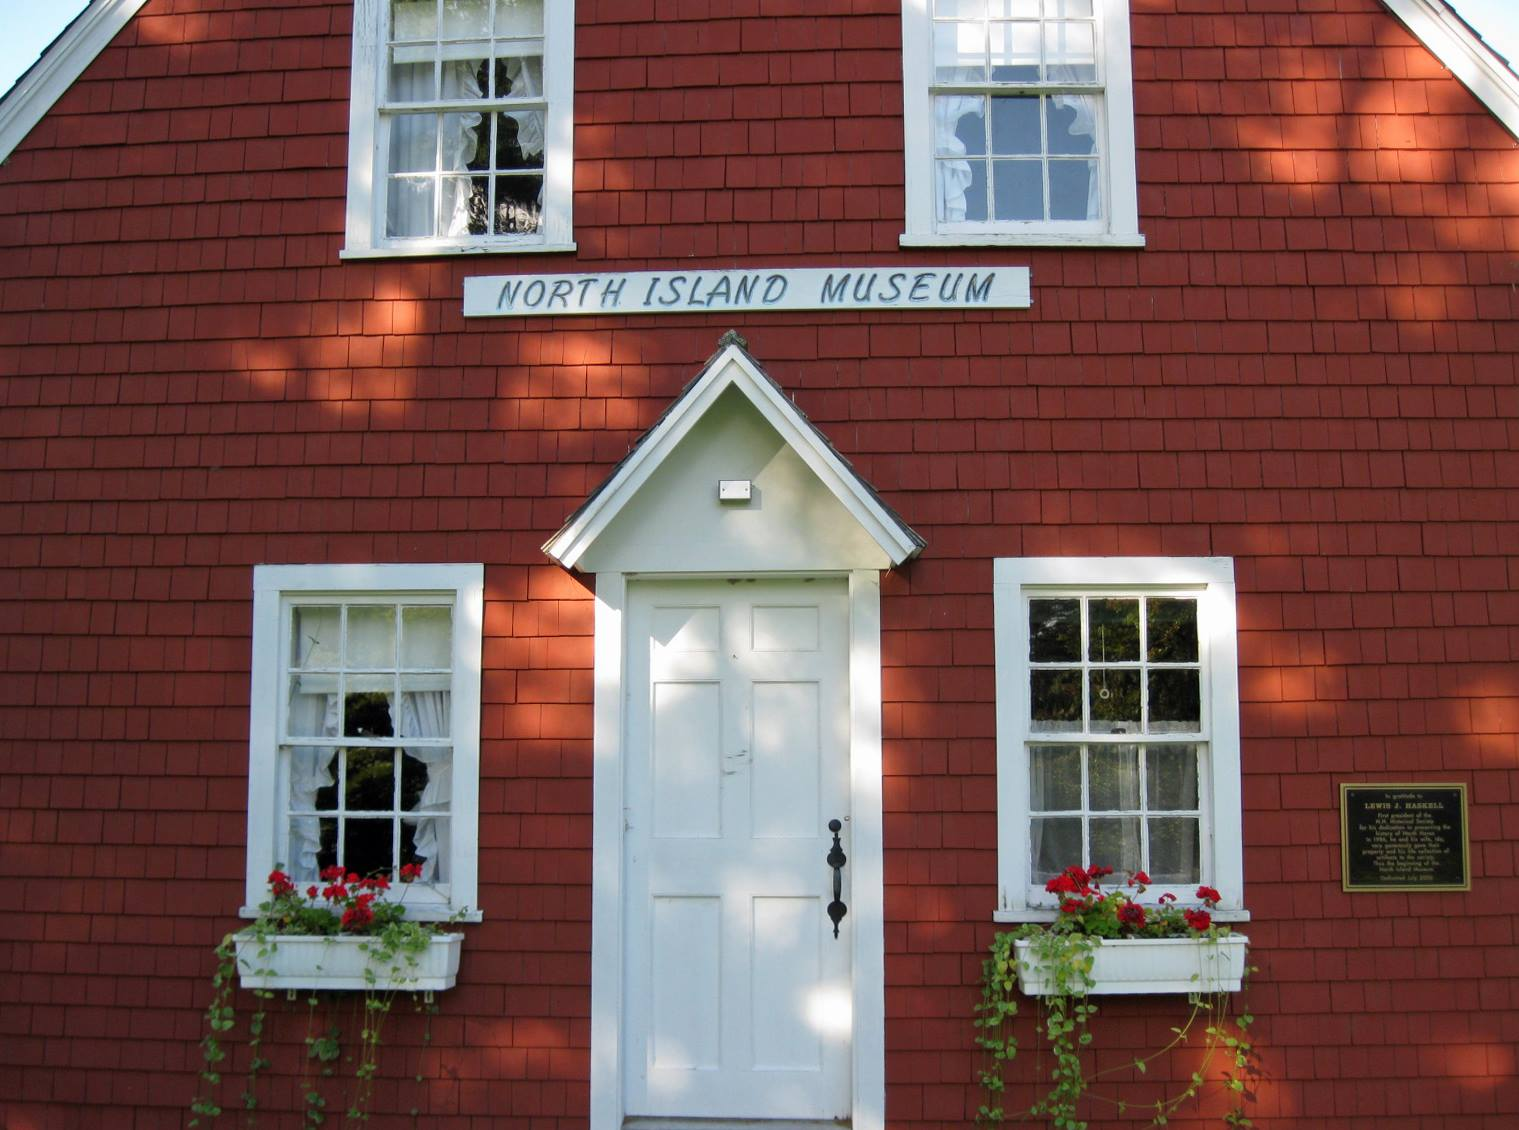 North Haven Historical Society (and North Island Museum)